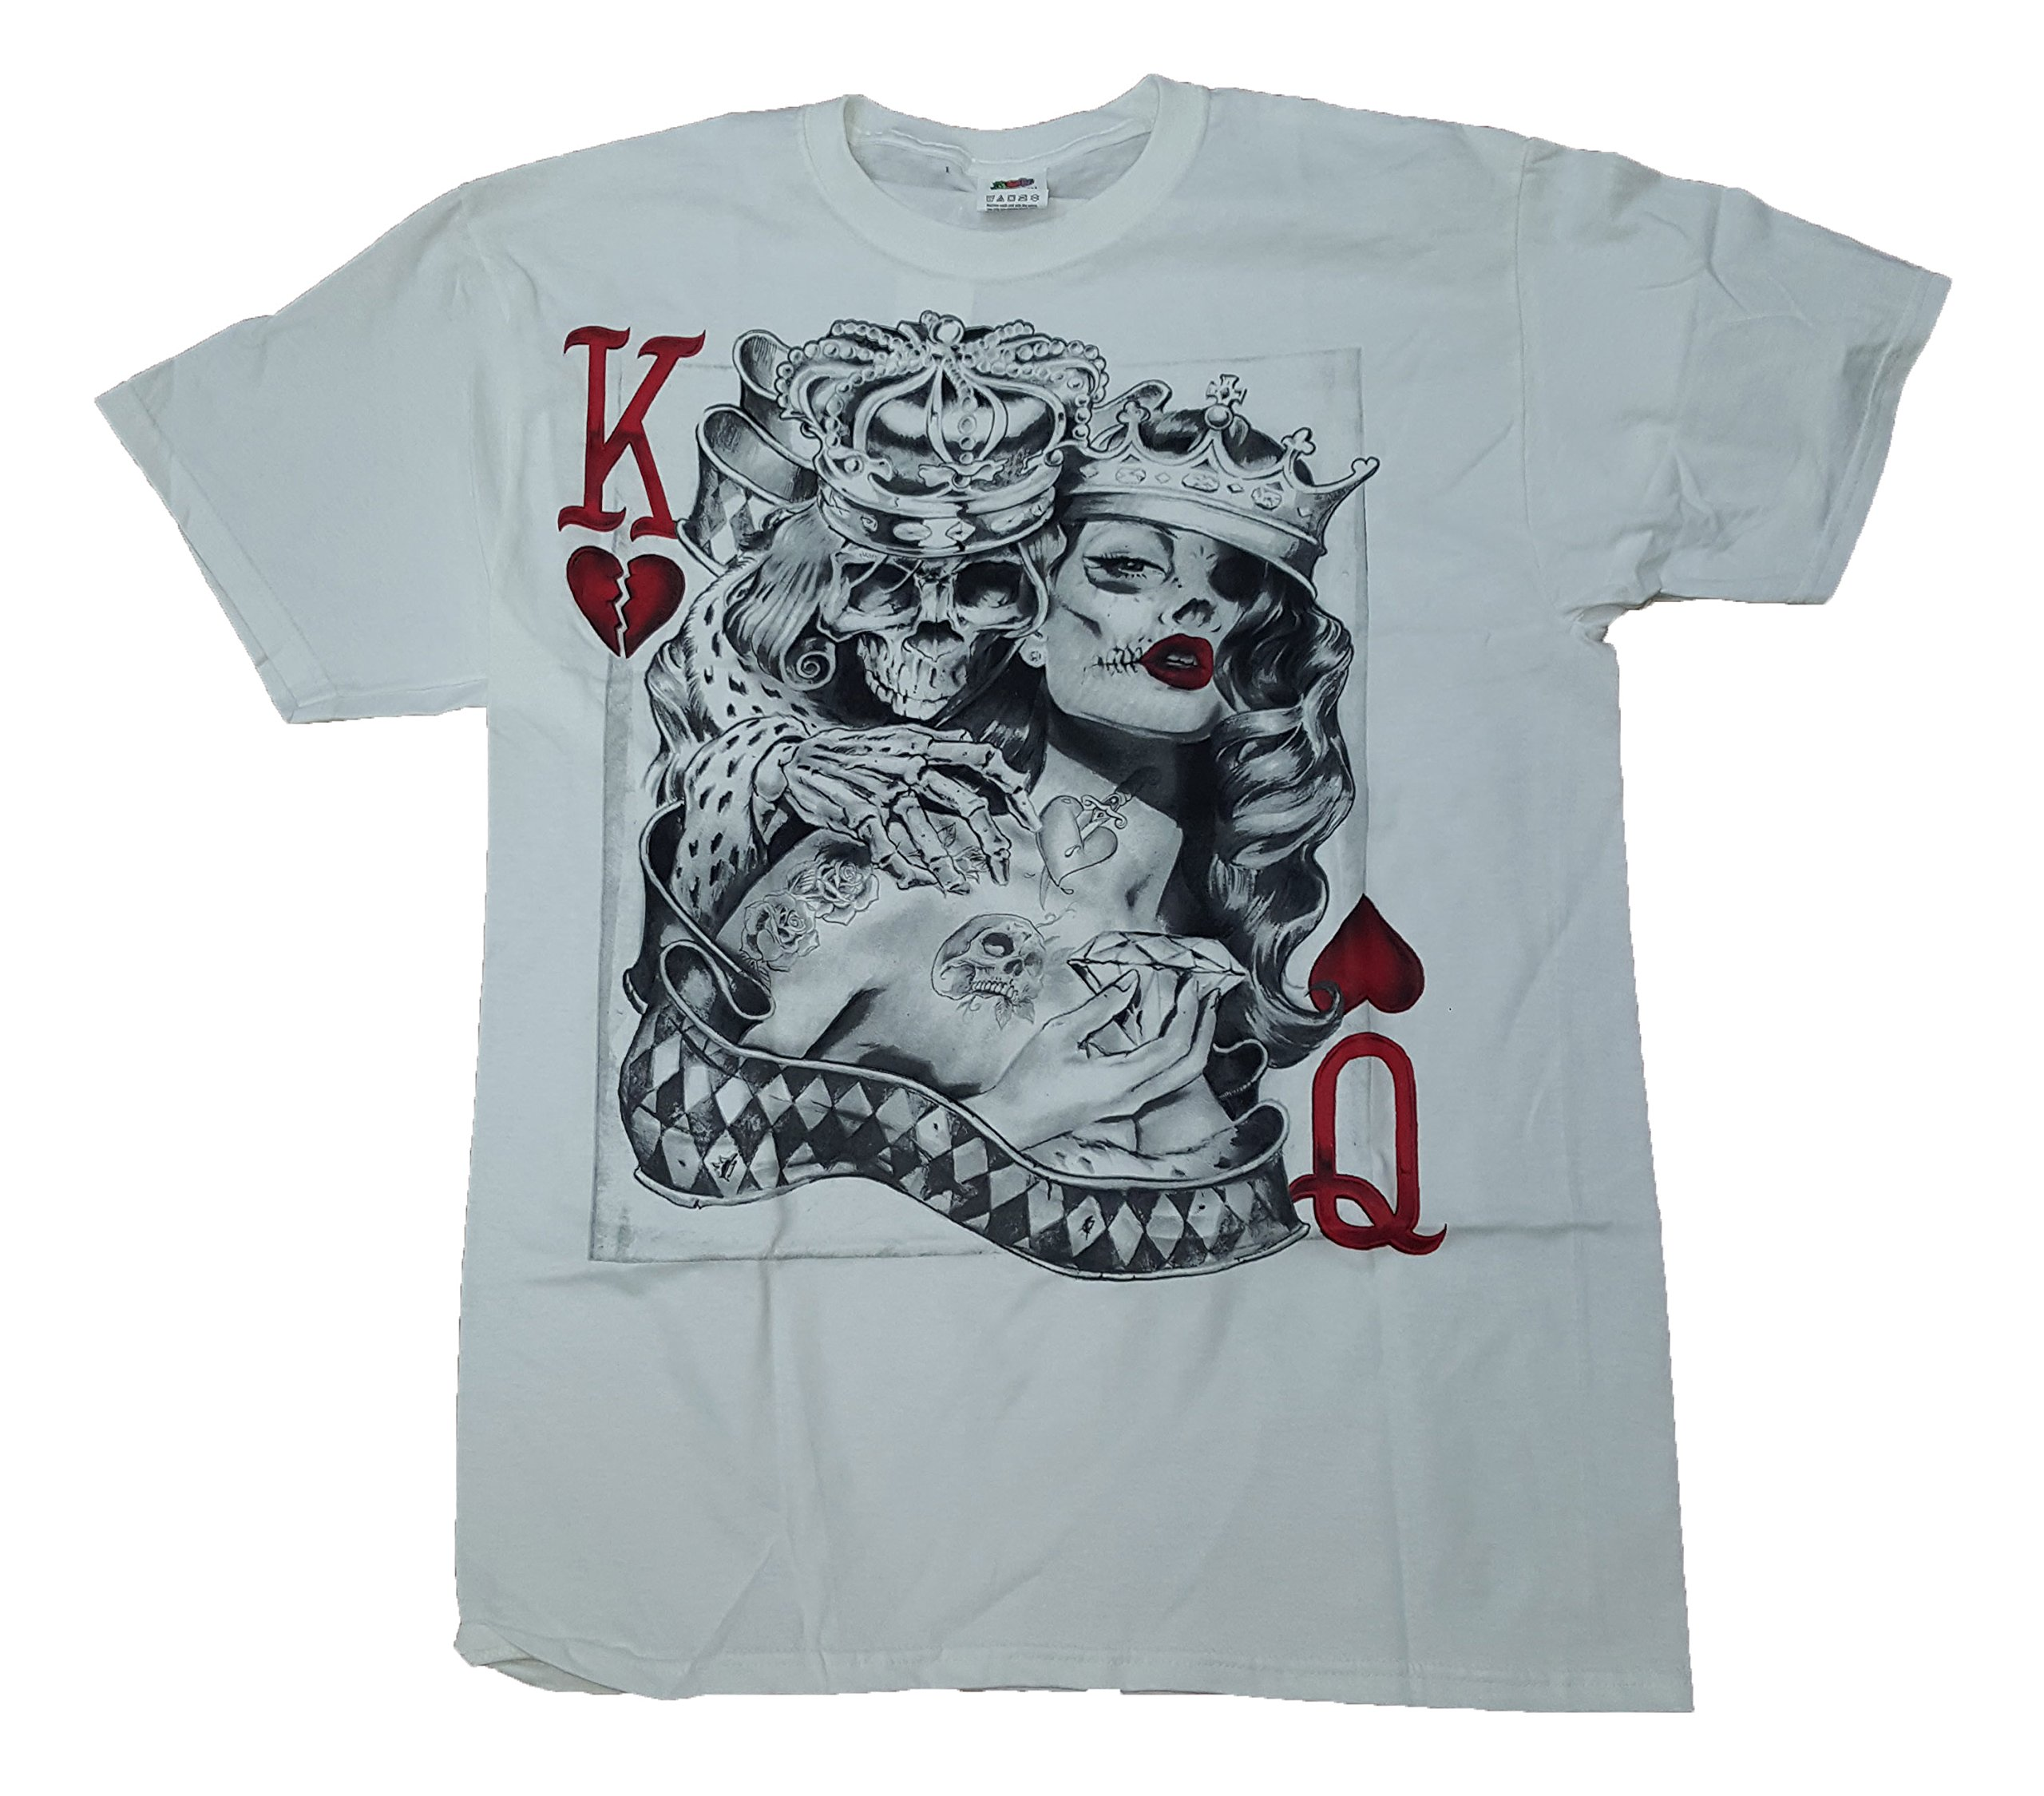 Skeleton King & Queen Of Hearts Graphic T-Shirt